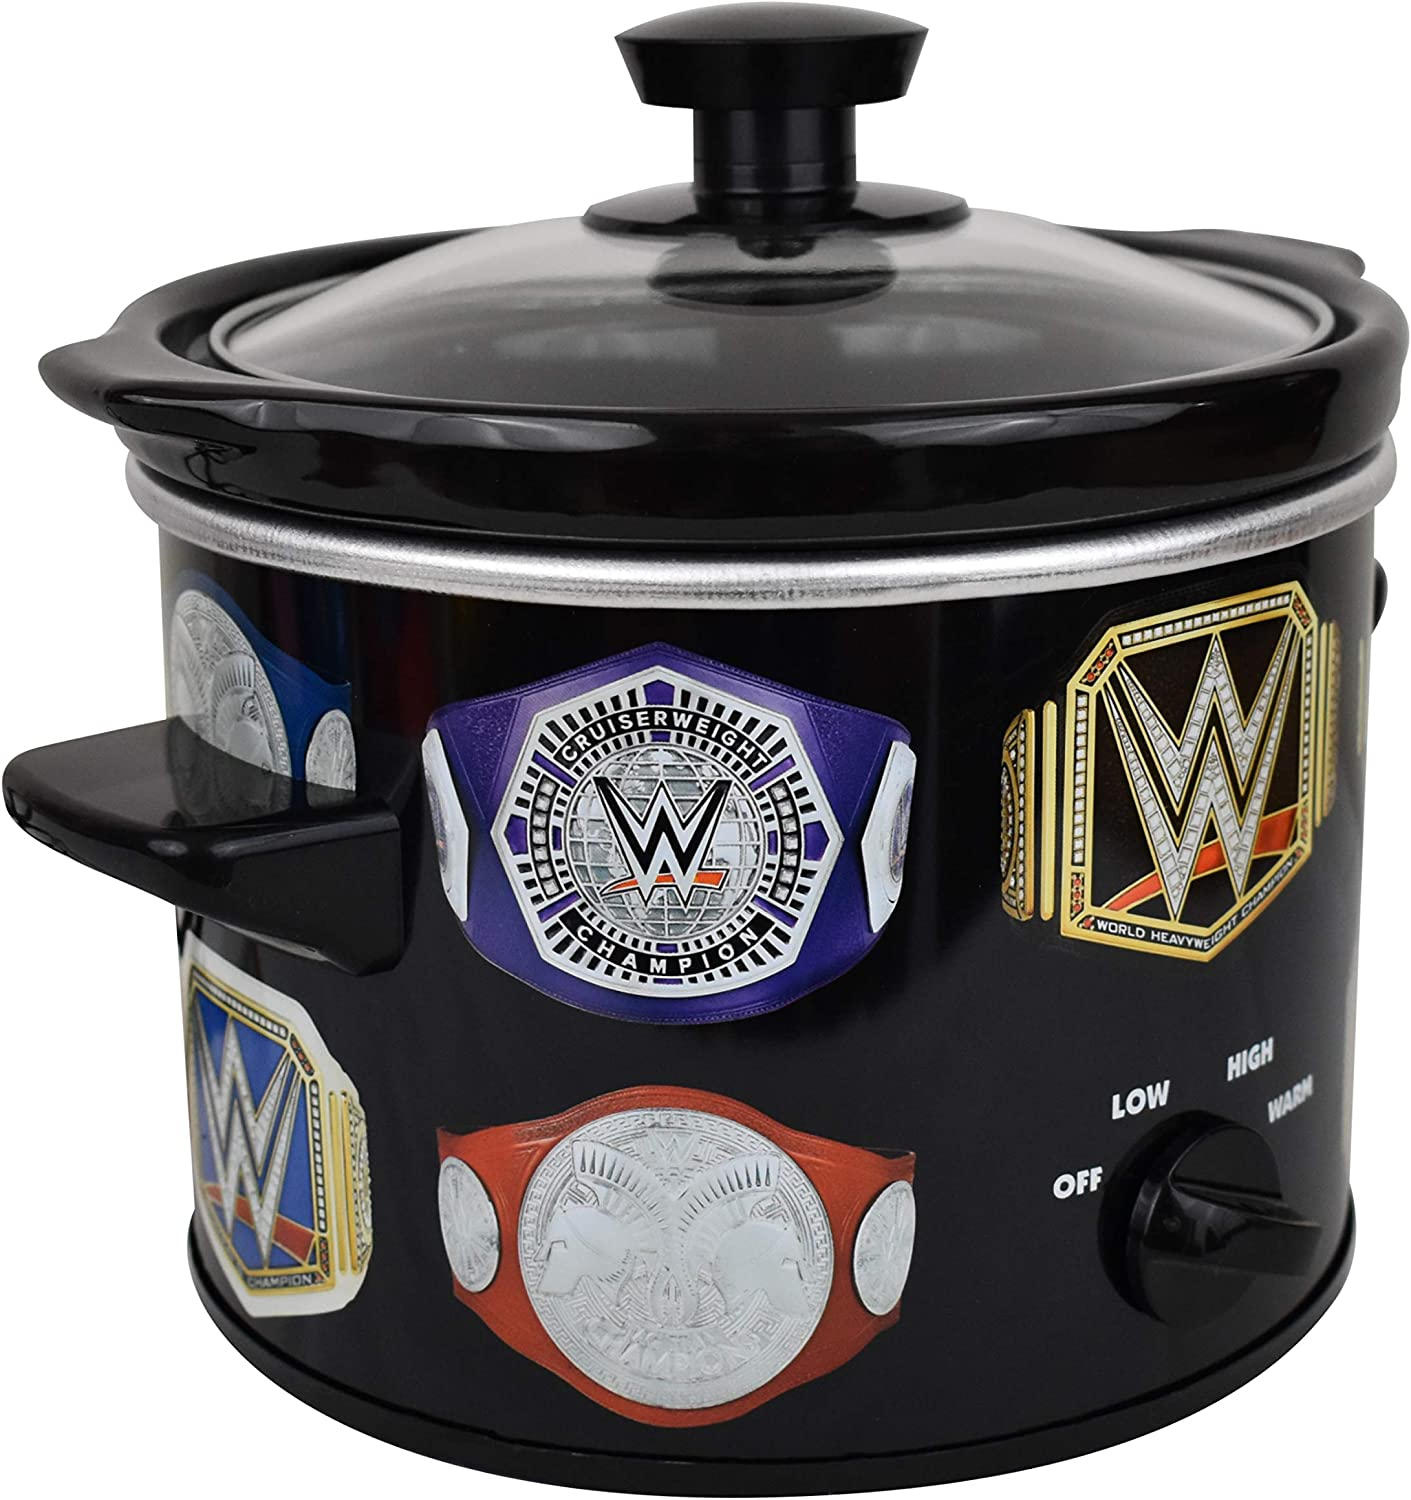 Uncanny Brands WWE Championship Belt 2 QT Slow Cooker- Removable Ceramic Insert Bowl